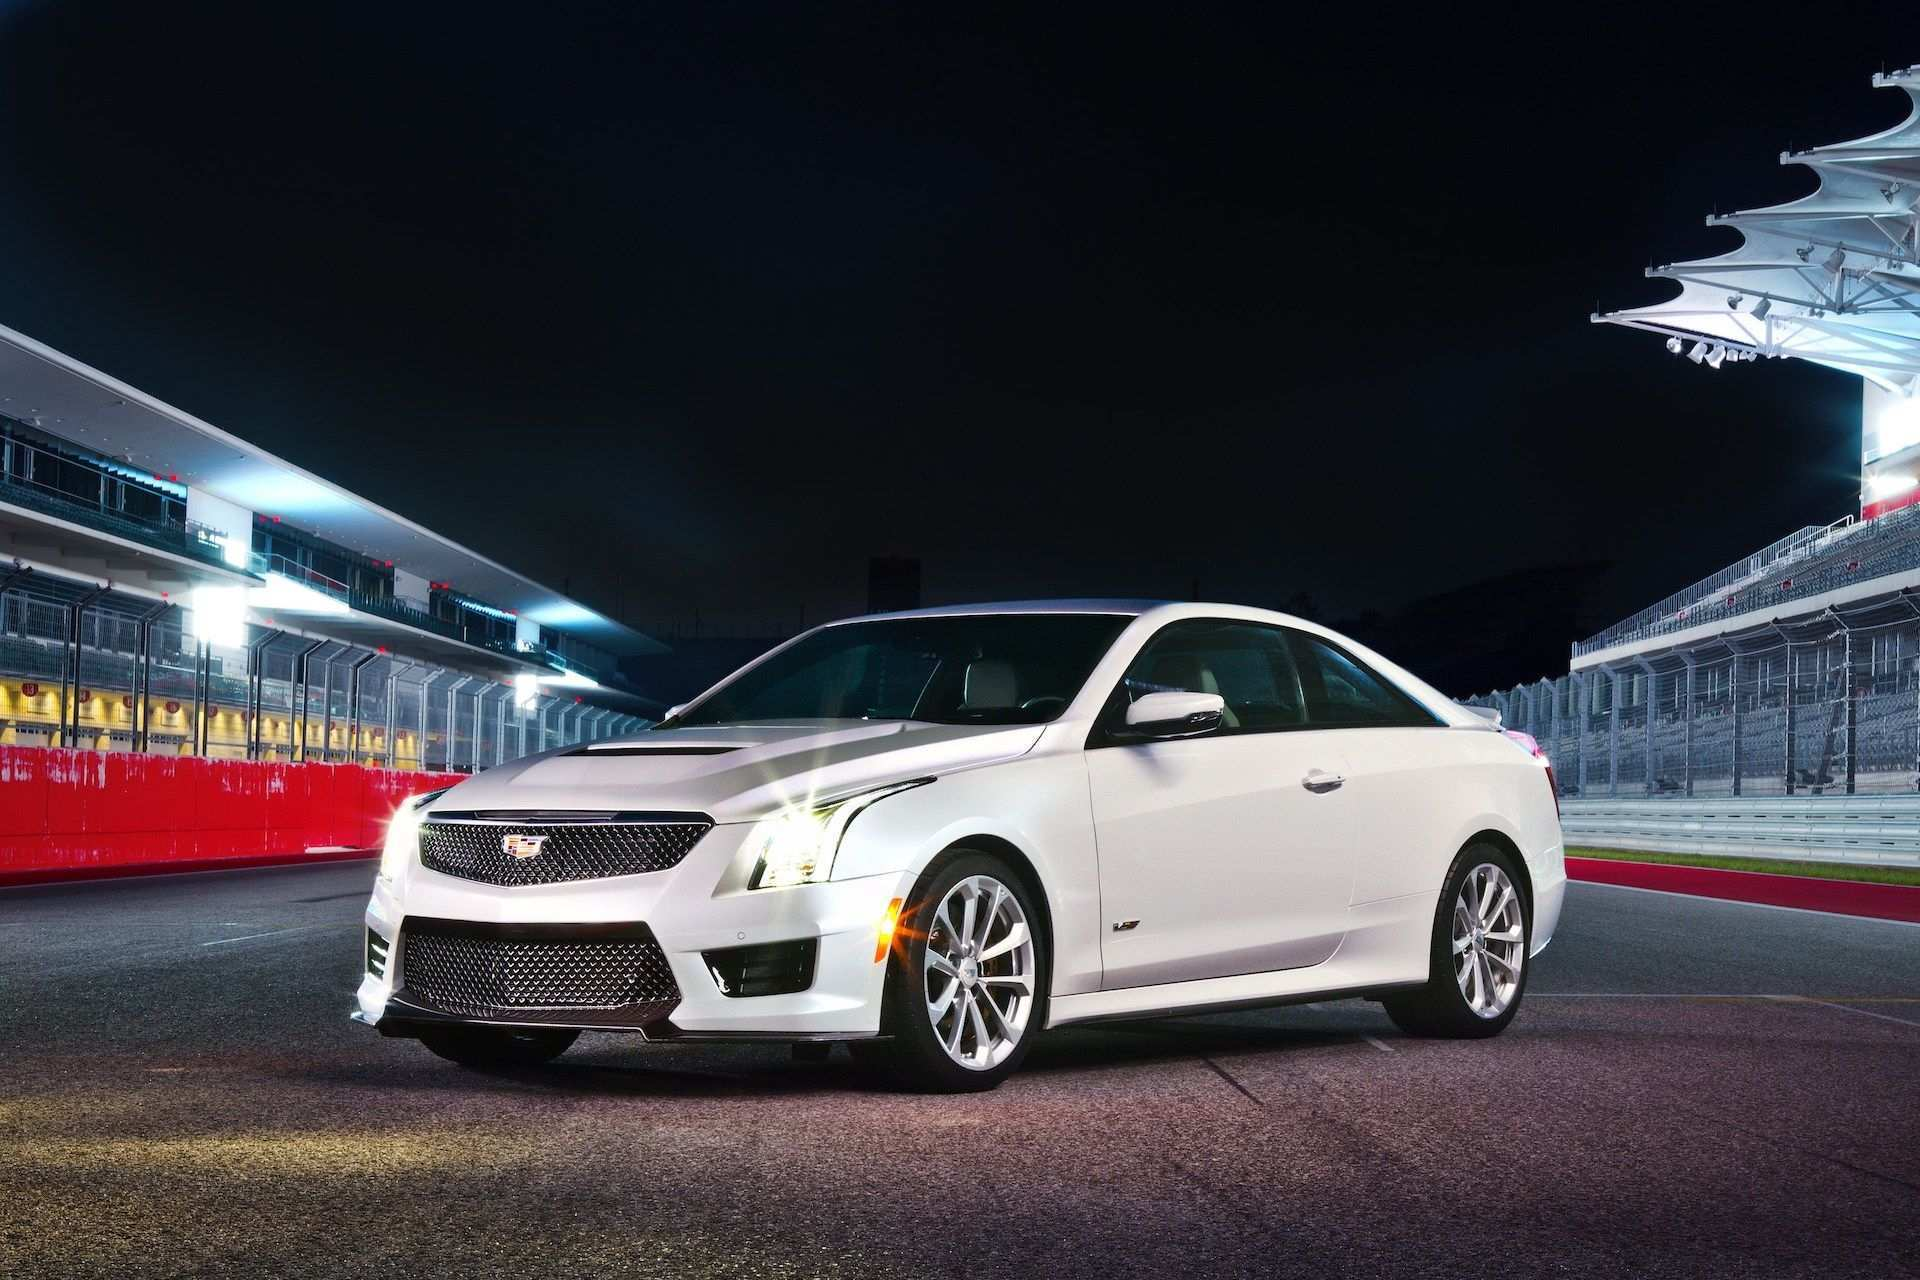 52 Great 2019 Cadillac Reviews Specs Speed Test by 2019 Cadillac Reviews Specs